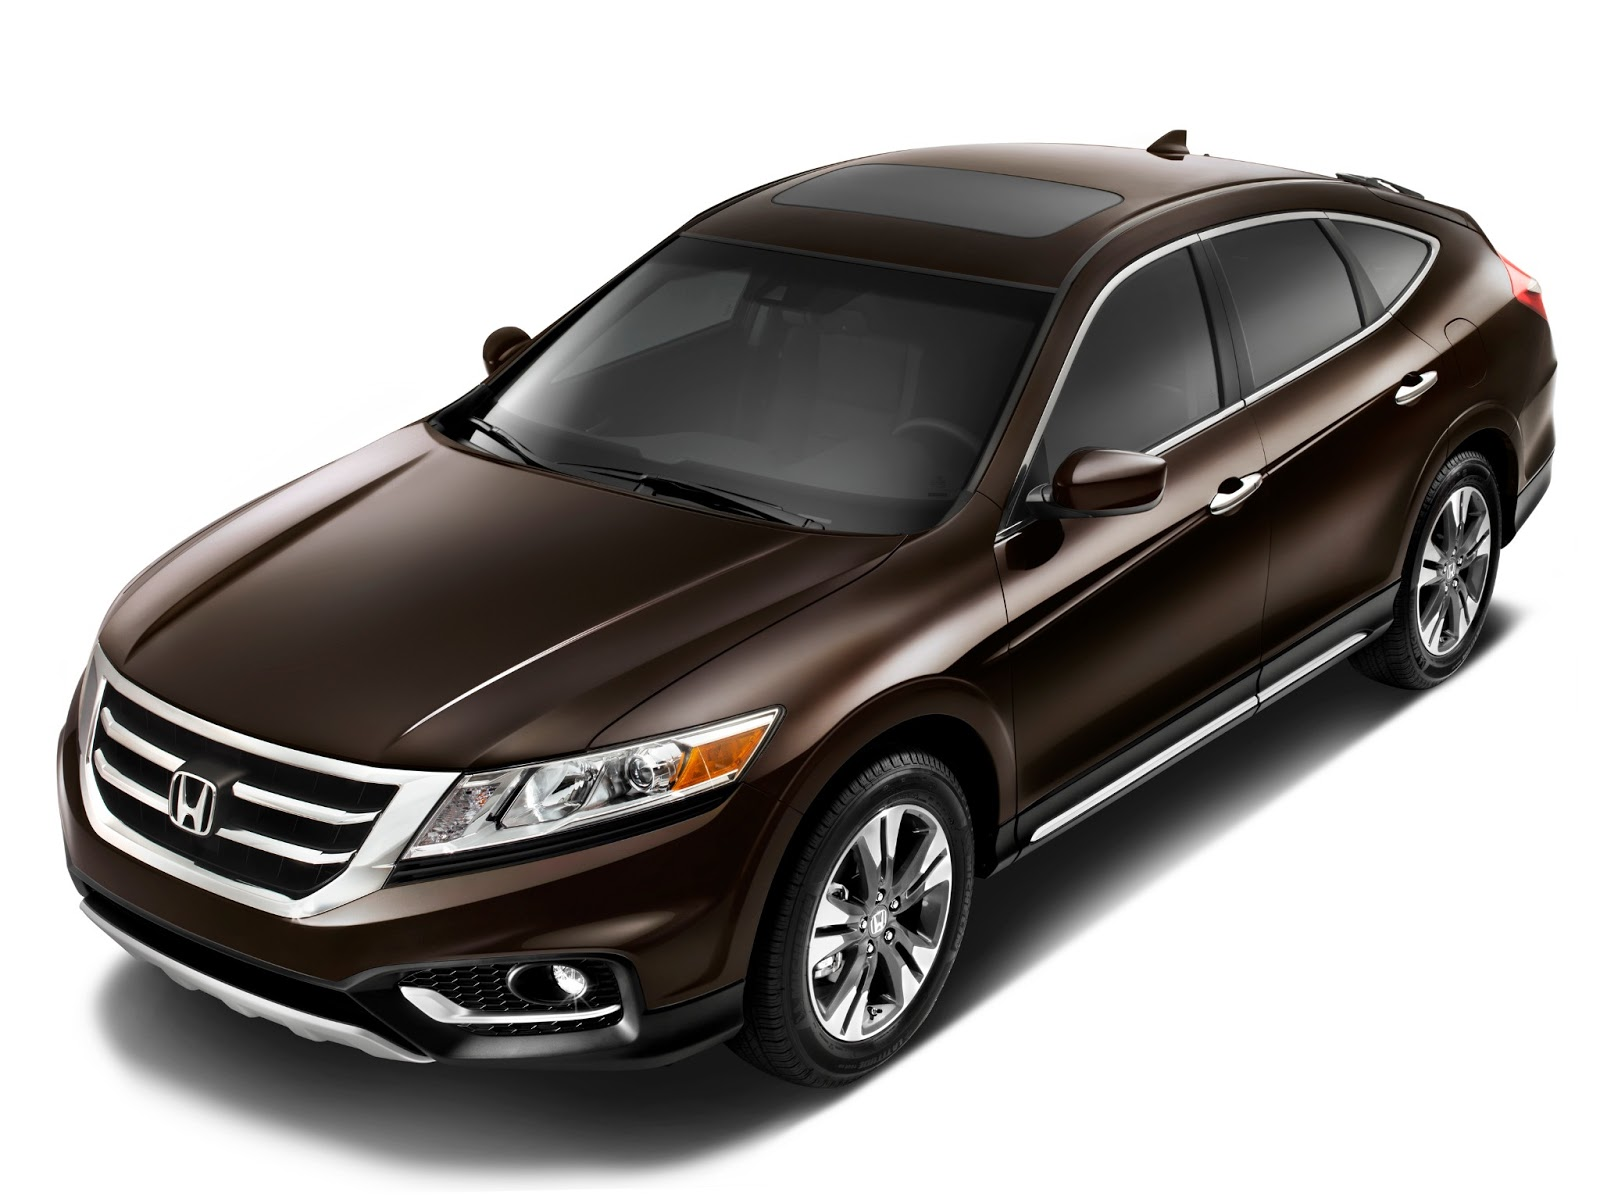 new car review 2013 honda crosstour. Black Bedroom Furniture Sets. Home Design Ideas